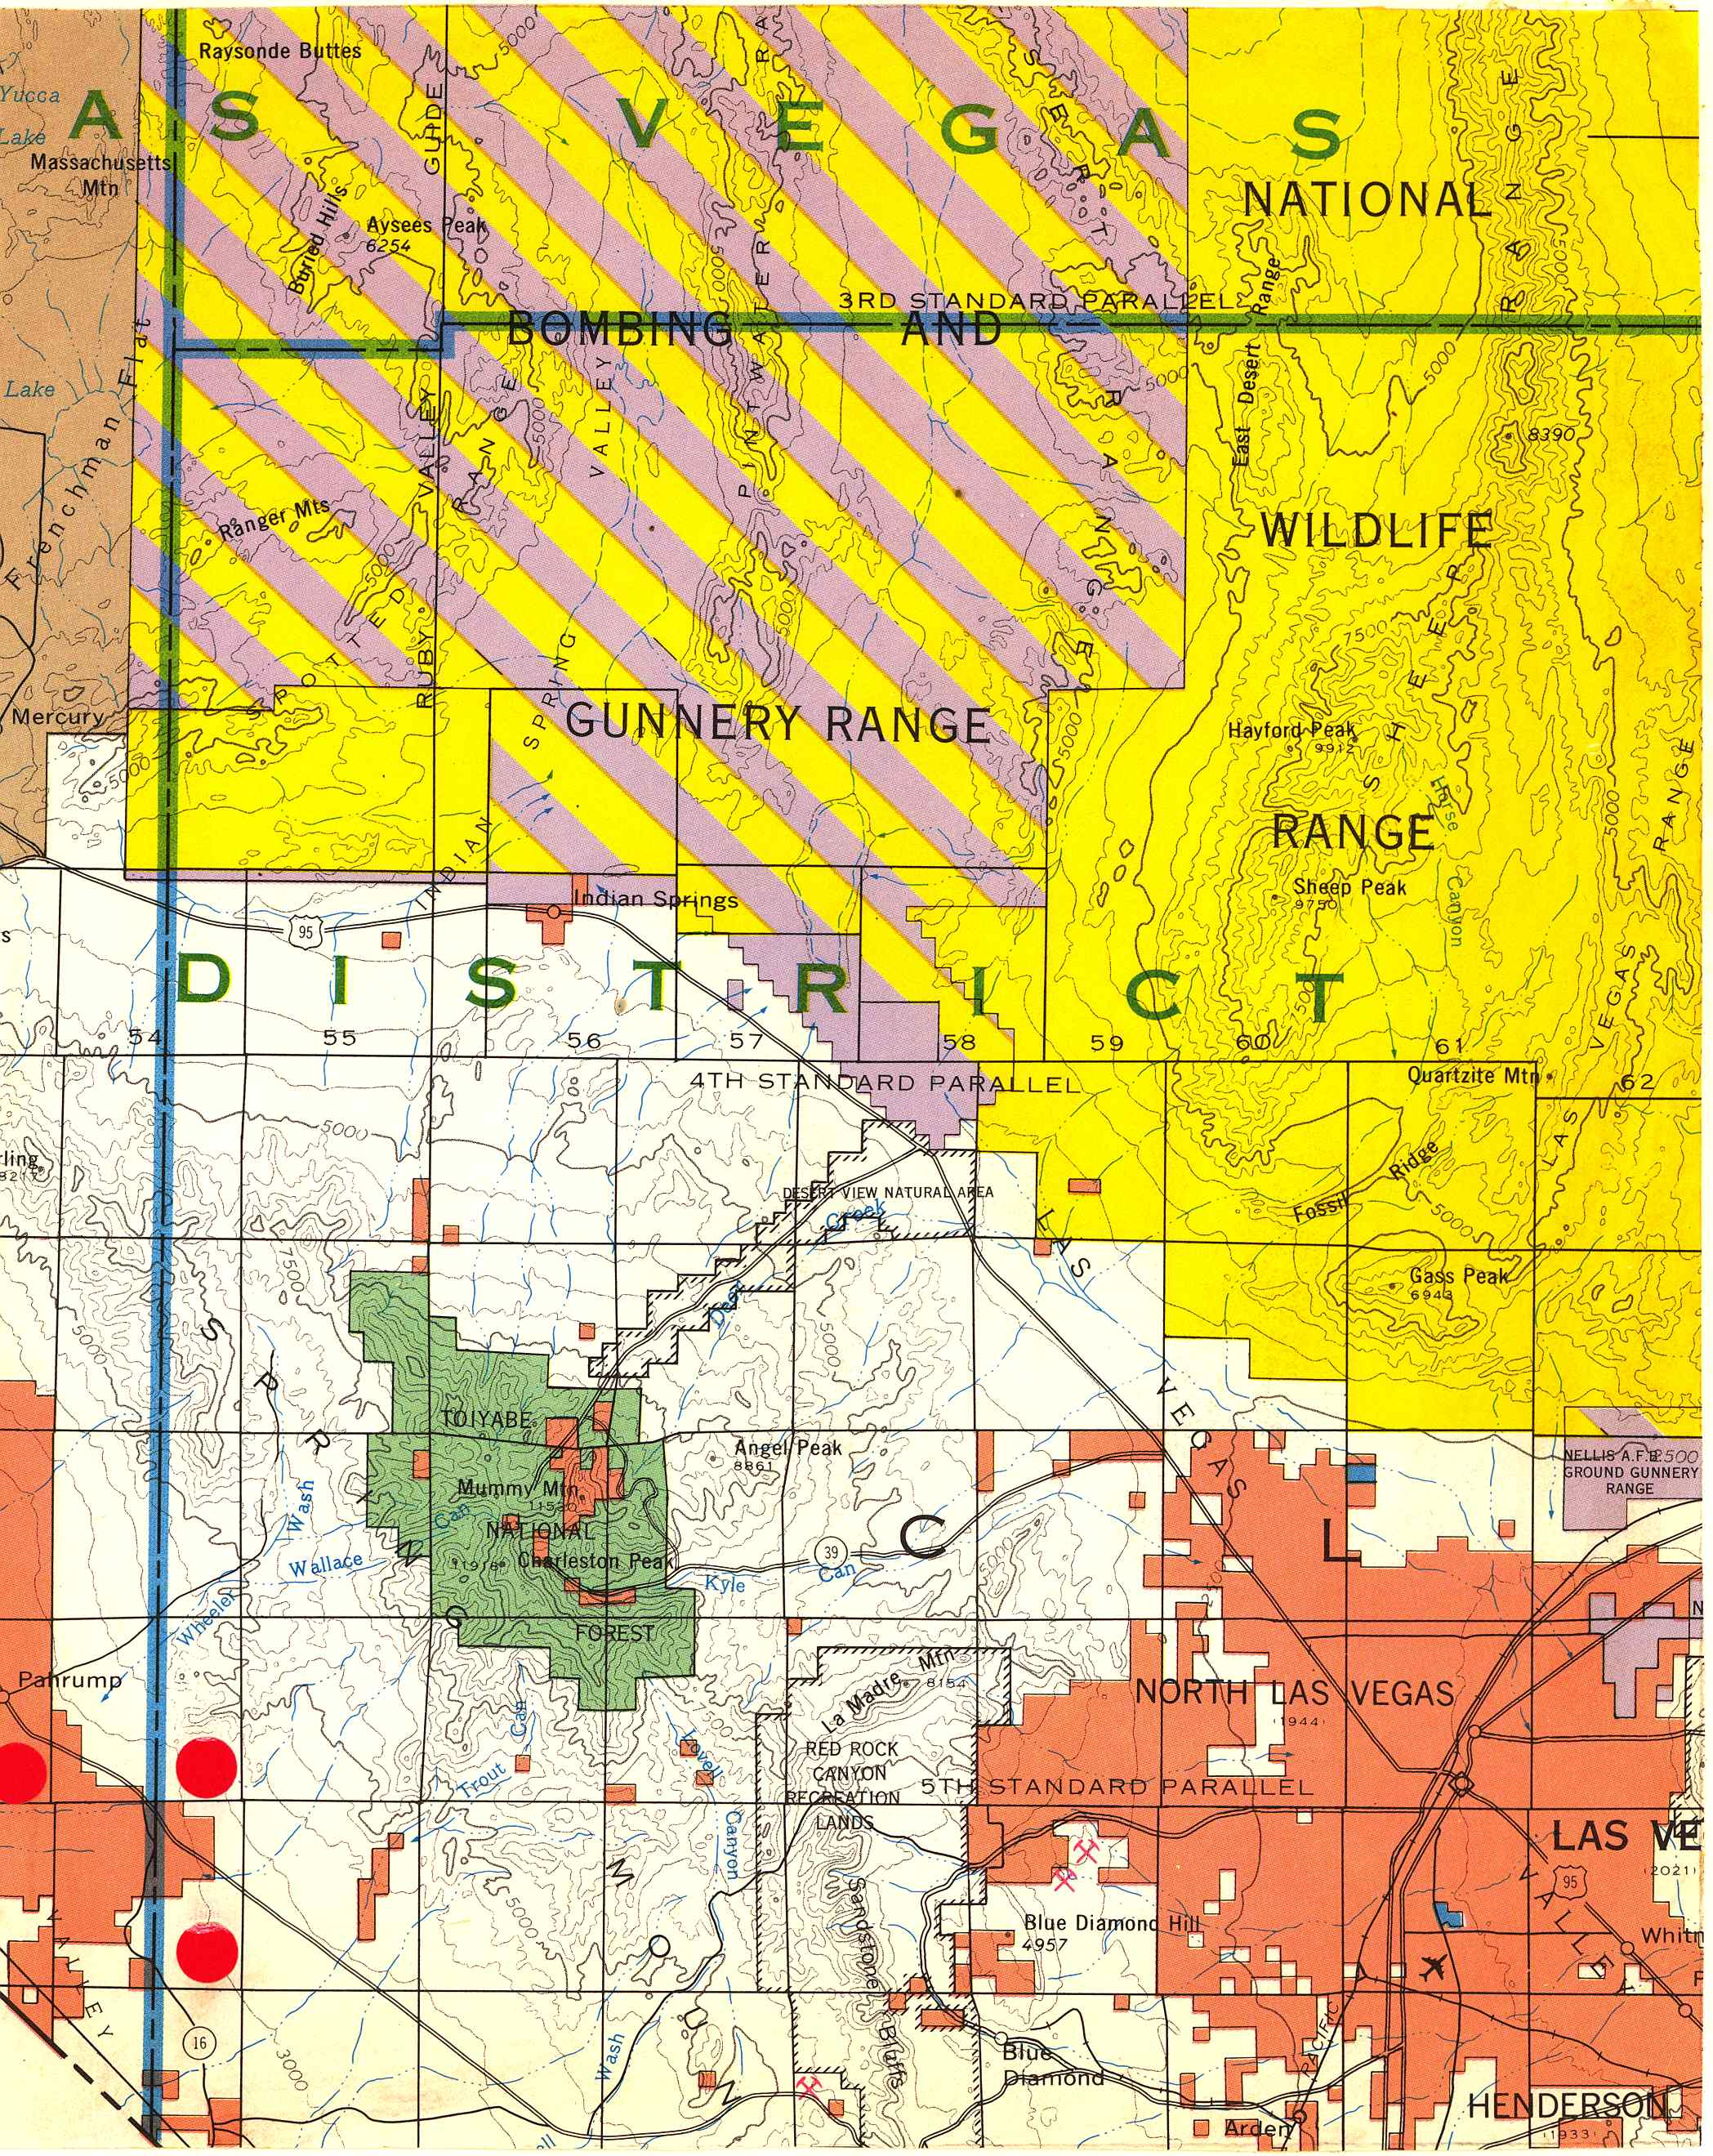 Map [2] 36:115 - Las Vegas - 1972